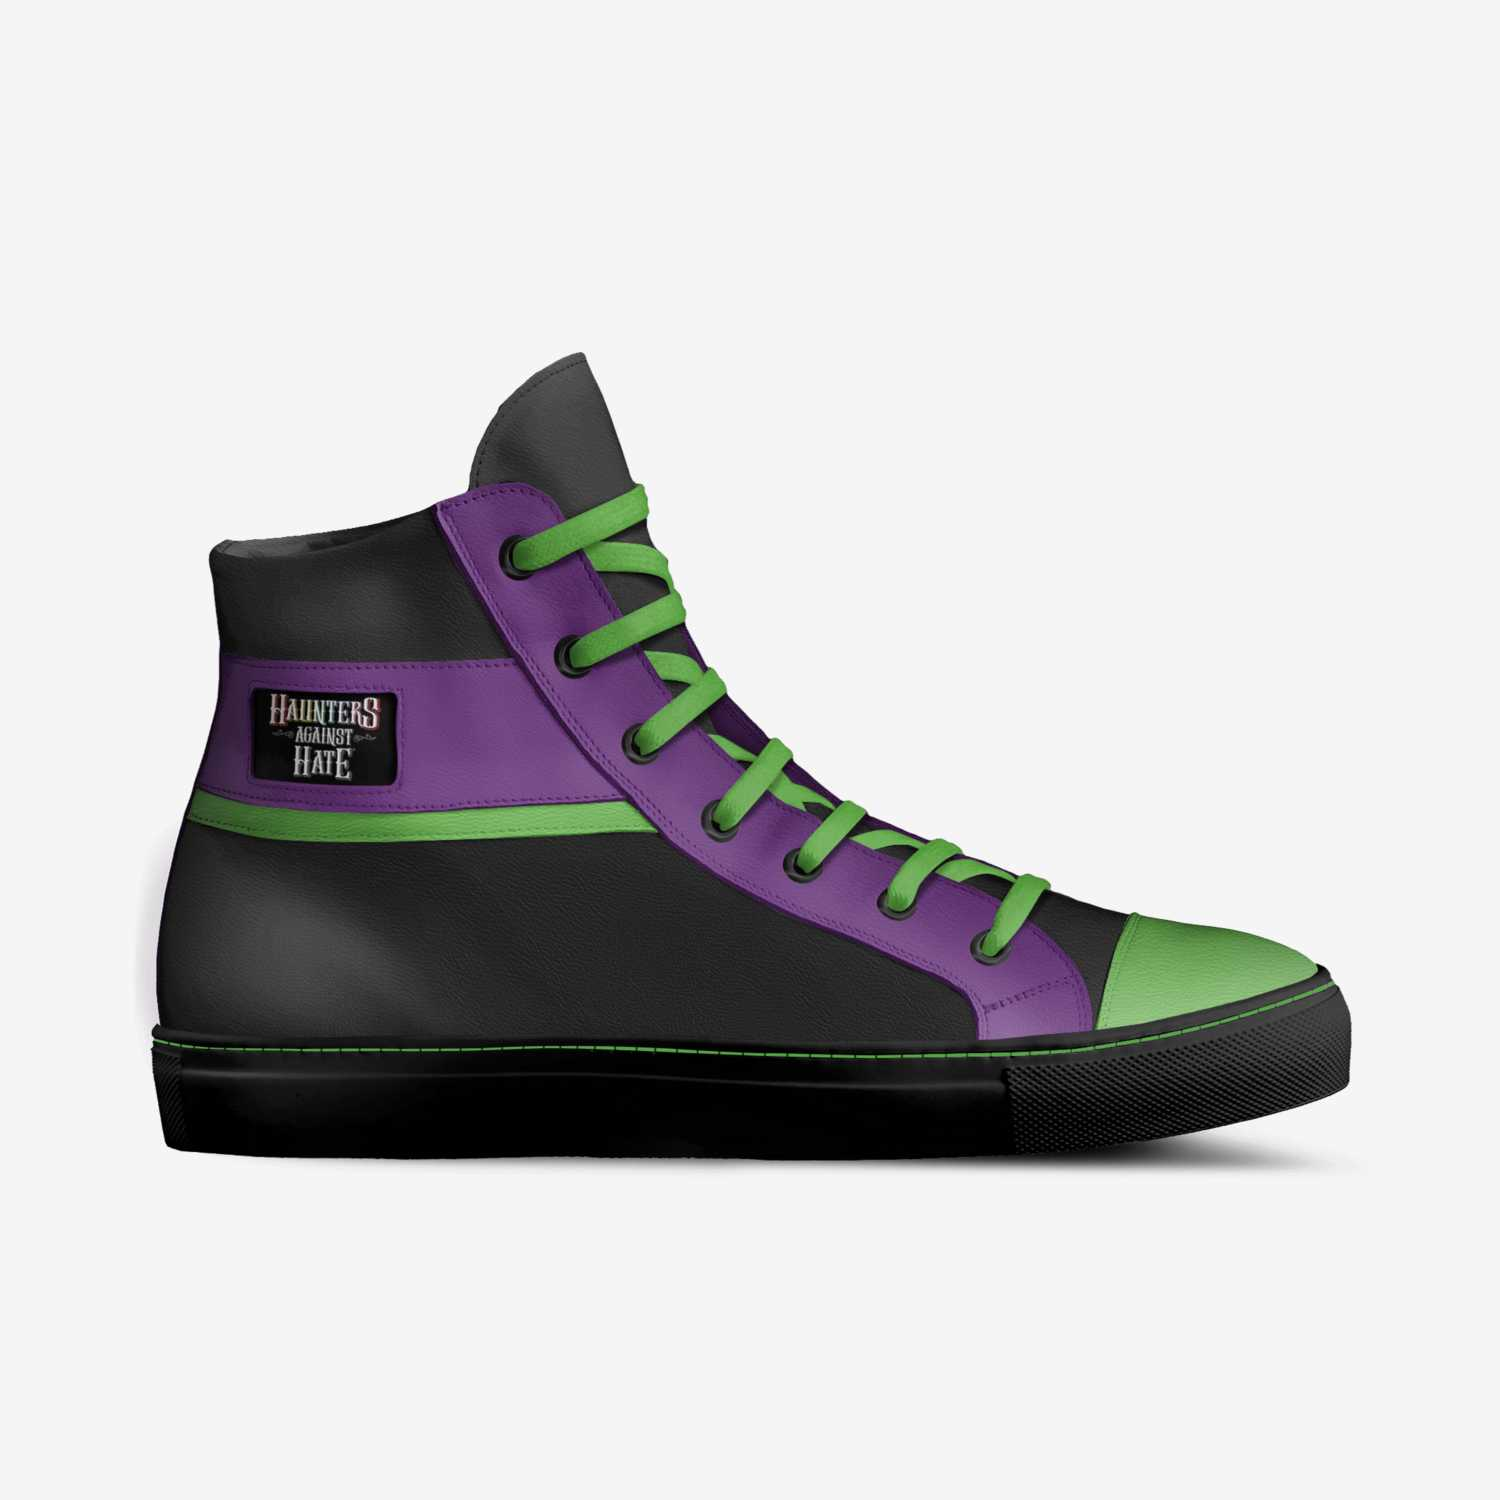 HauntersAgainstH8 custom made in Italy shoes by Paul Lanner   Side view